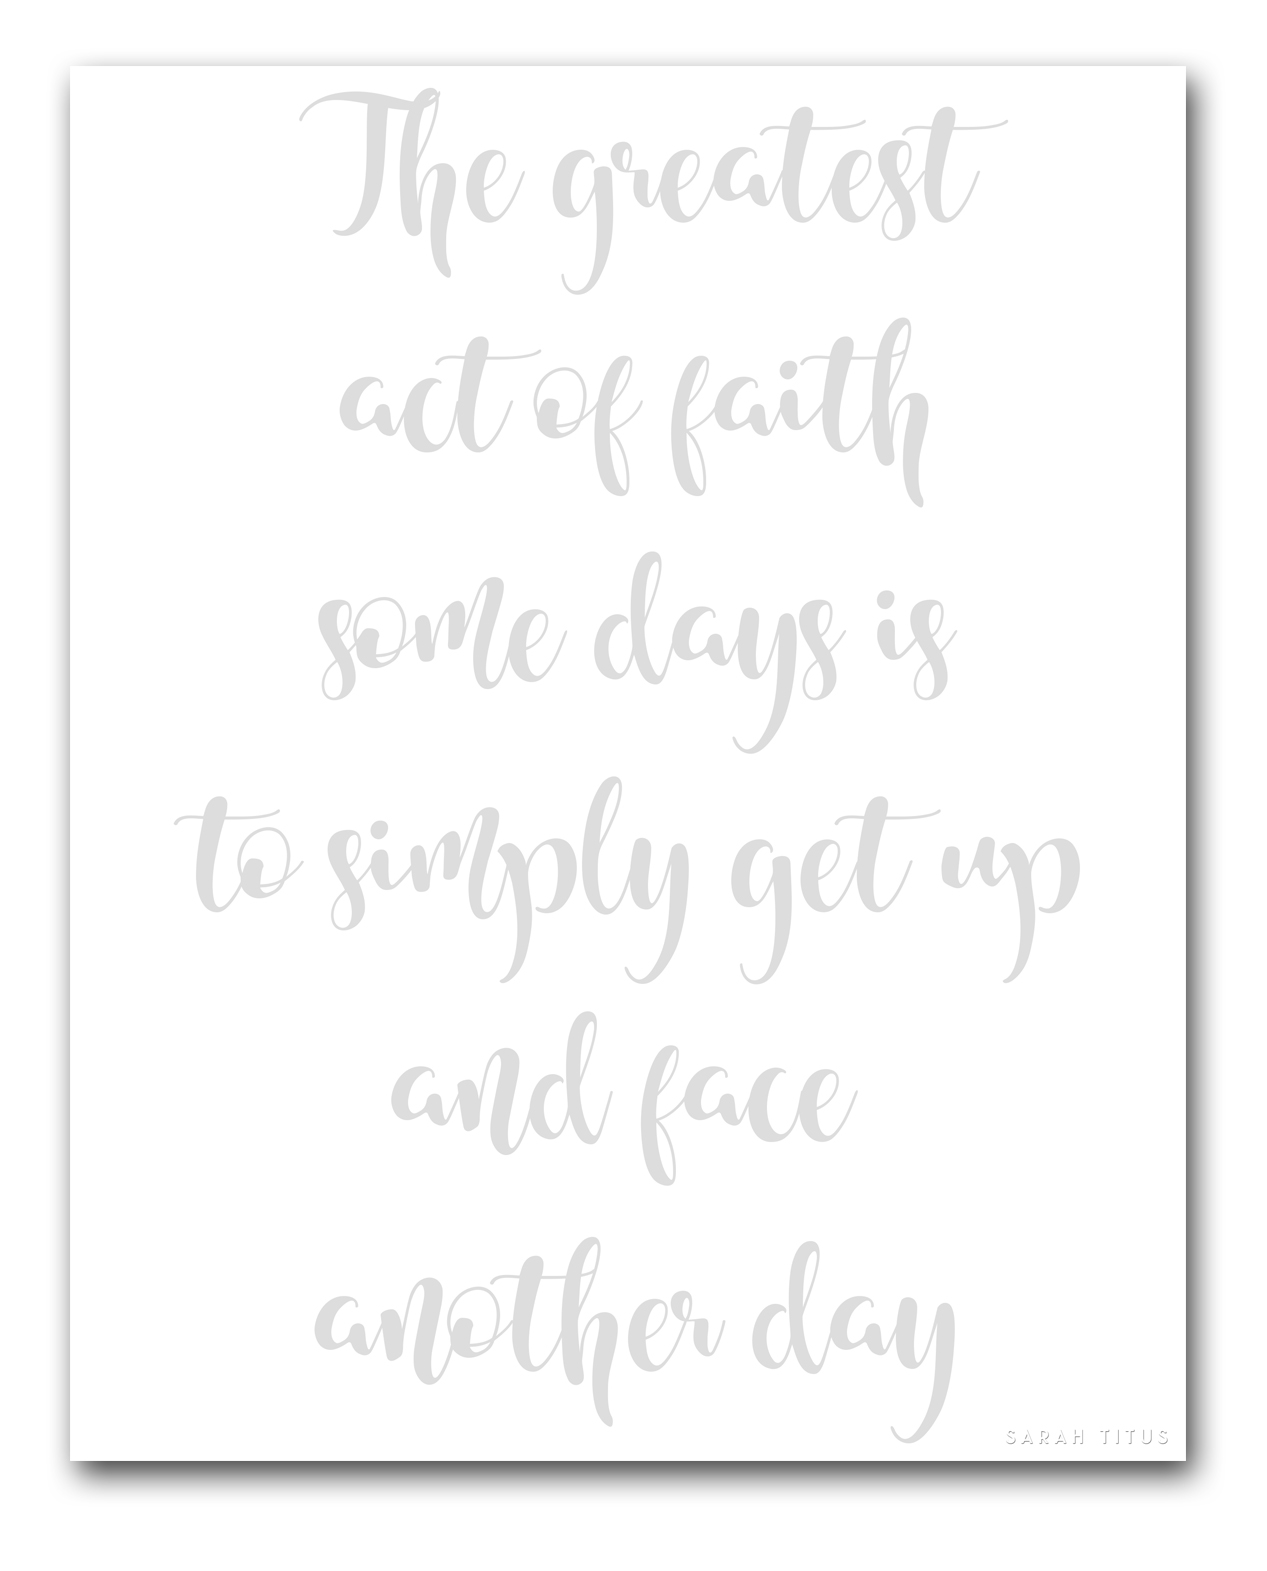 30 Days to Better Hand Lettering Series. I'm posting a new encouraging hand lettering practice sheet for you every day for 30 days! #handlettering #inspirationalquotes #30dayseries #handletteringpracticesheet #freeprintables #printables